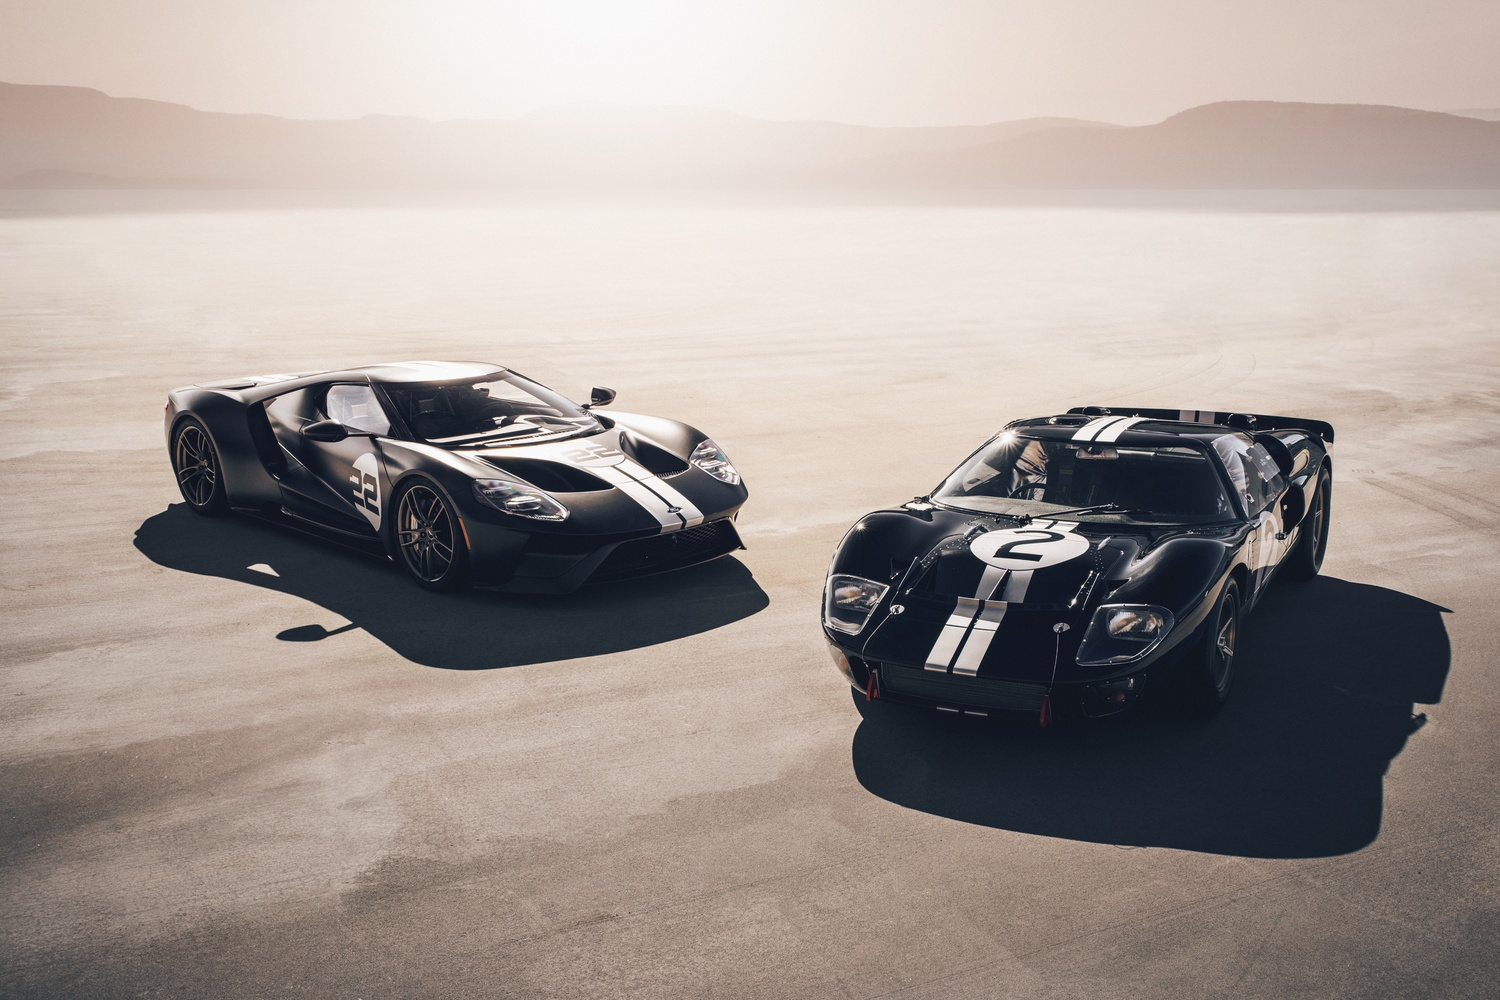 2017 Ford GT Heritage Edition and the 1966 Le-Mans-winning Ford GT40 by Dominic Mann